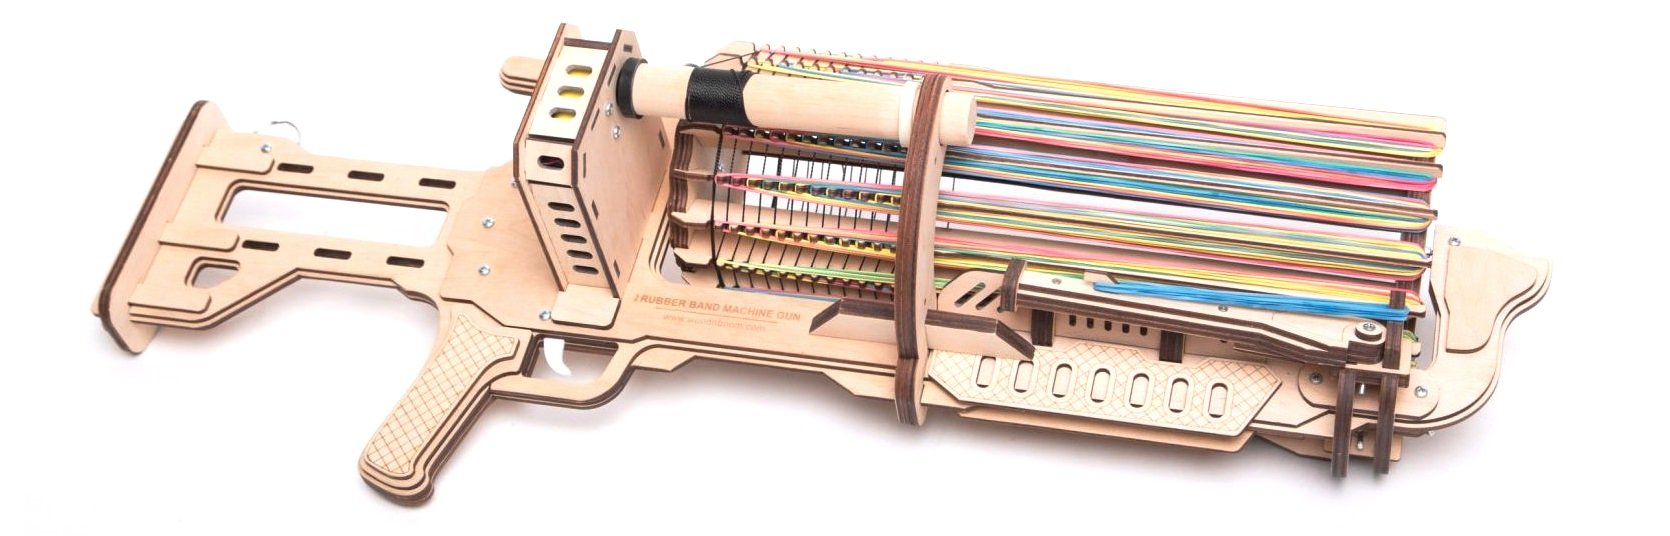 Wood n Boom Rubberband Machine Gun